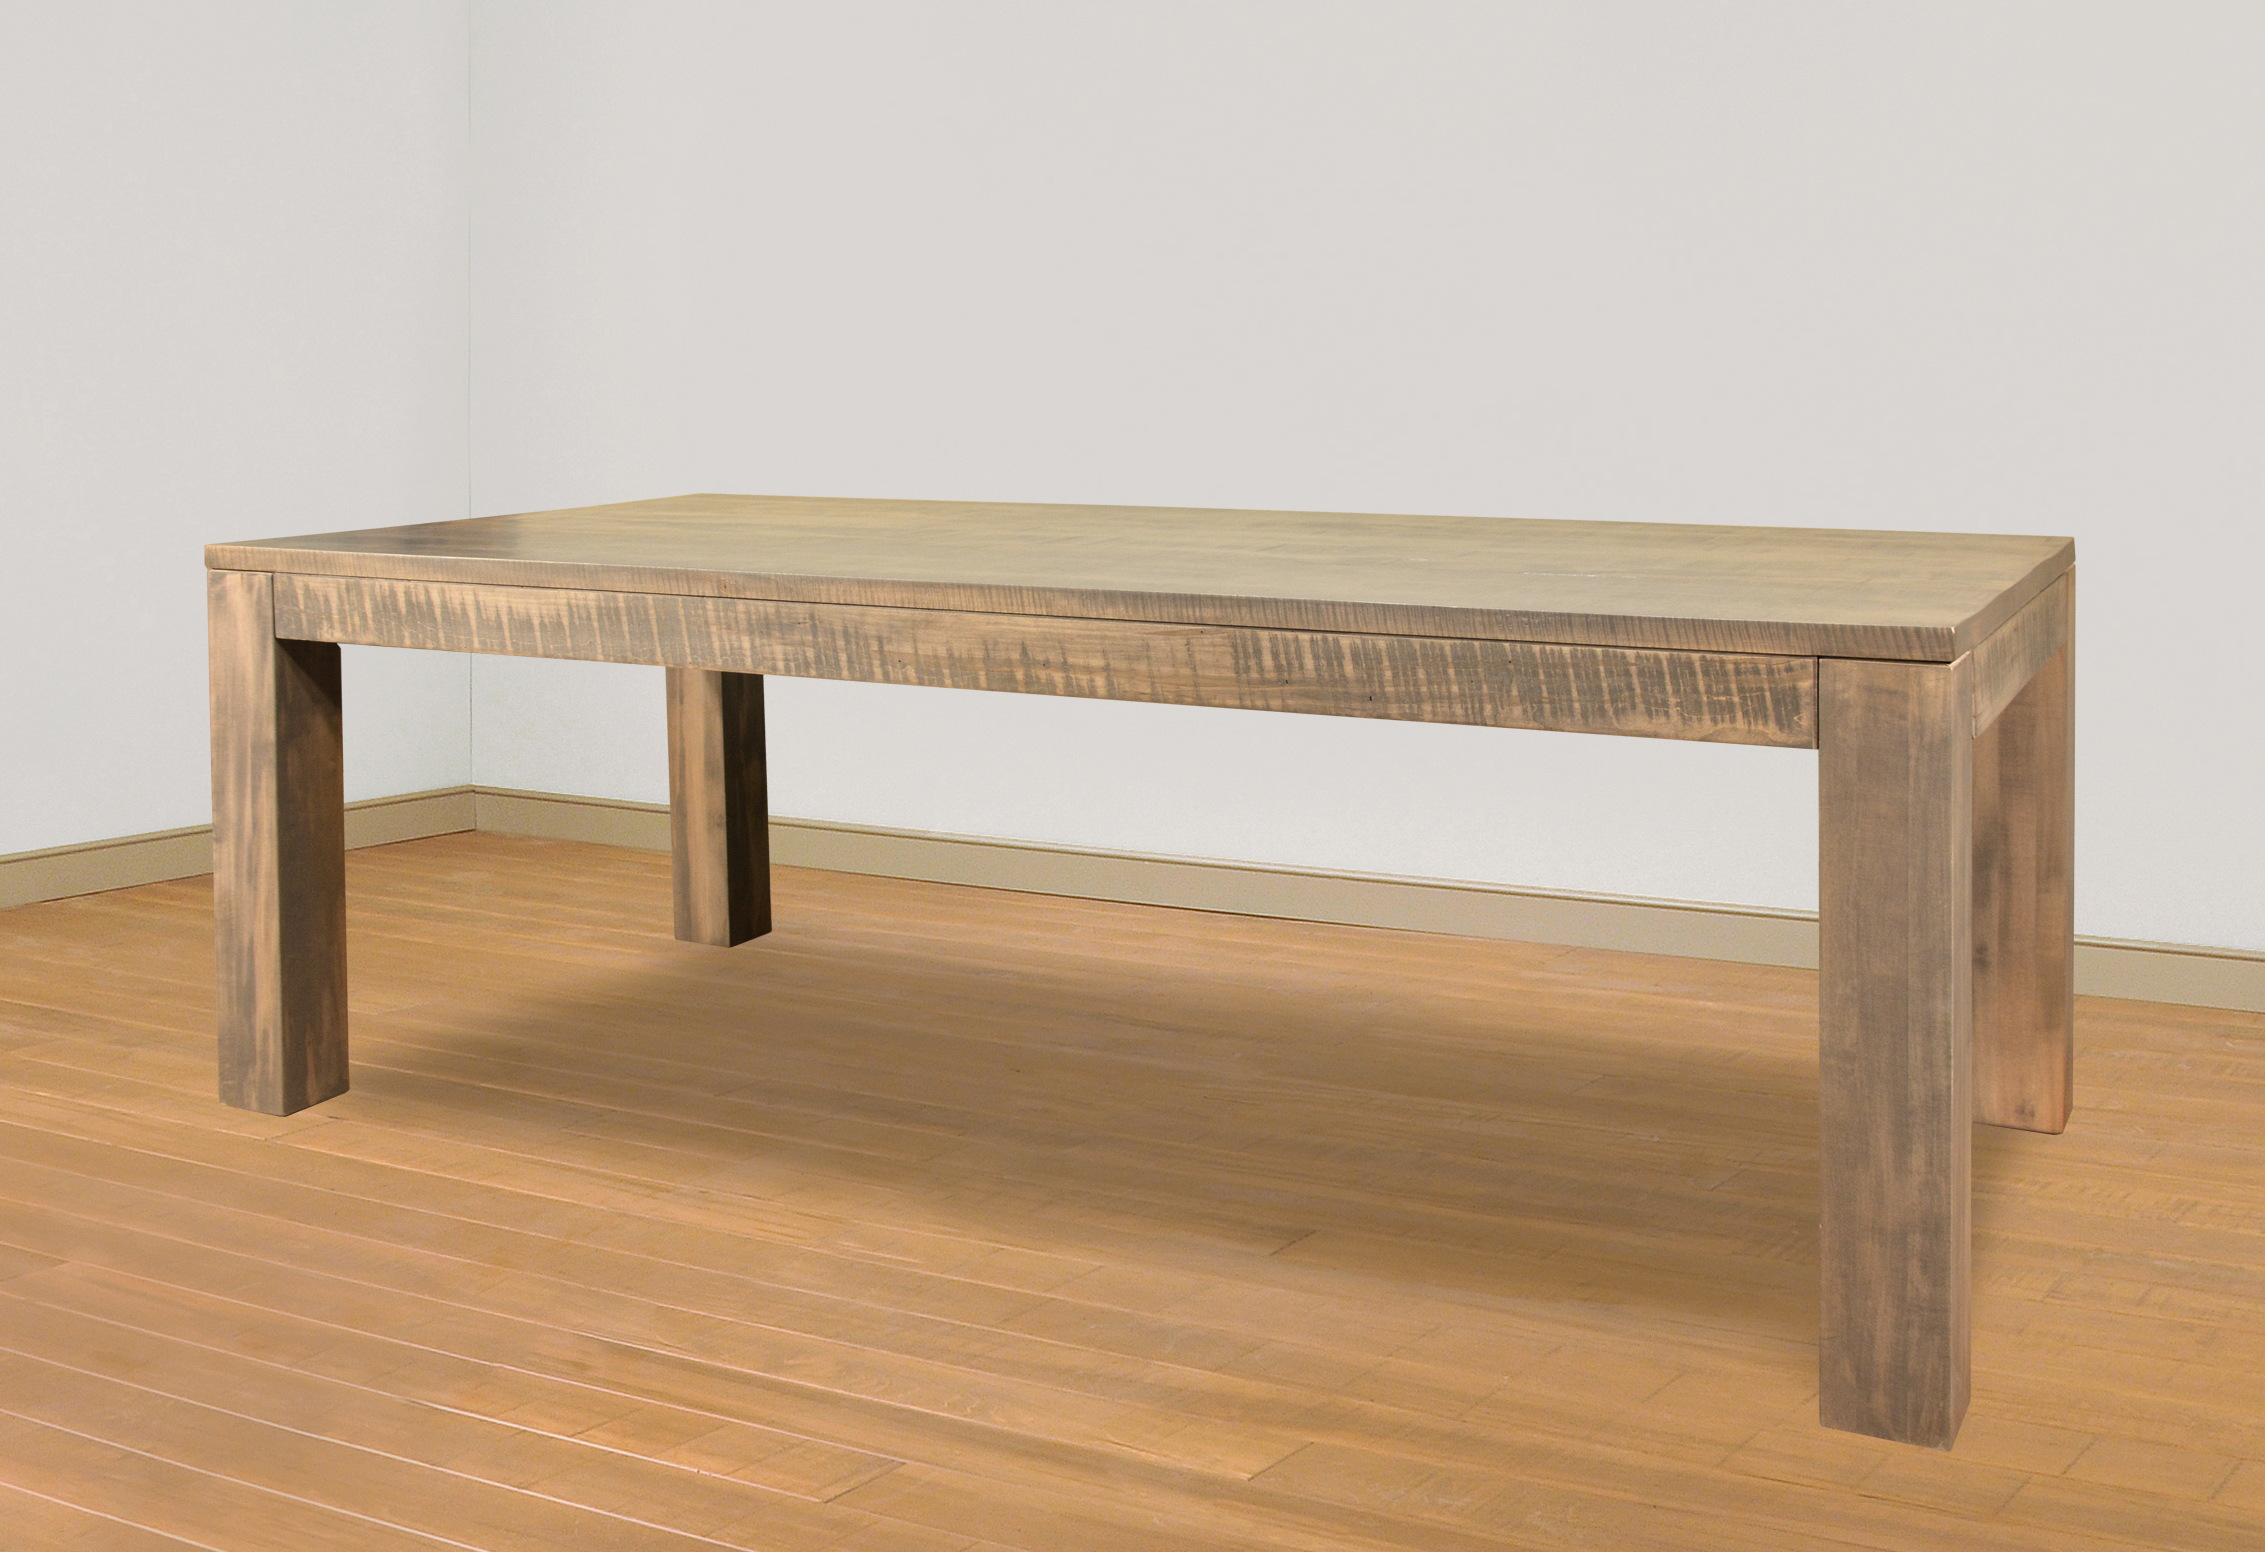 Rustic heidelburg table for sale in PA